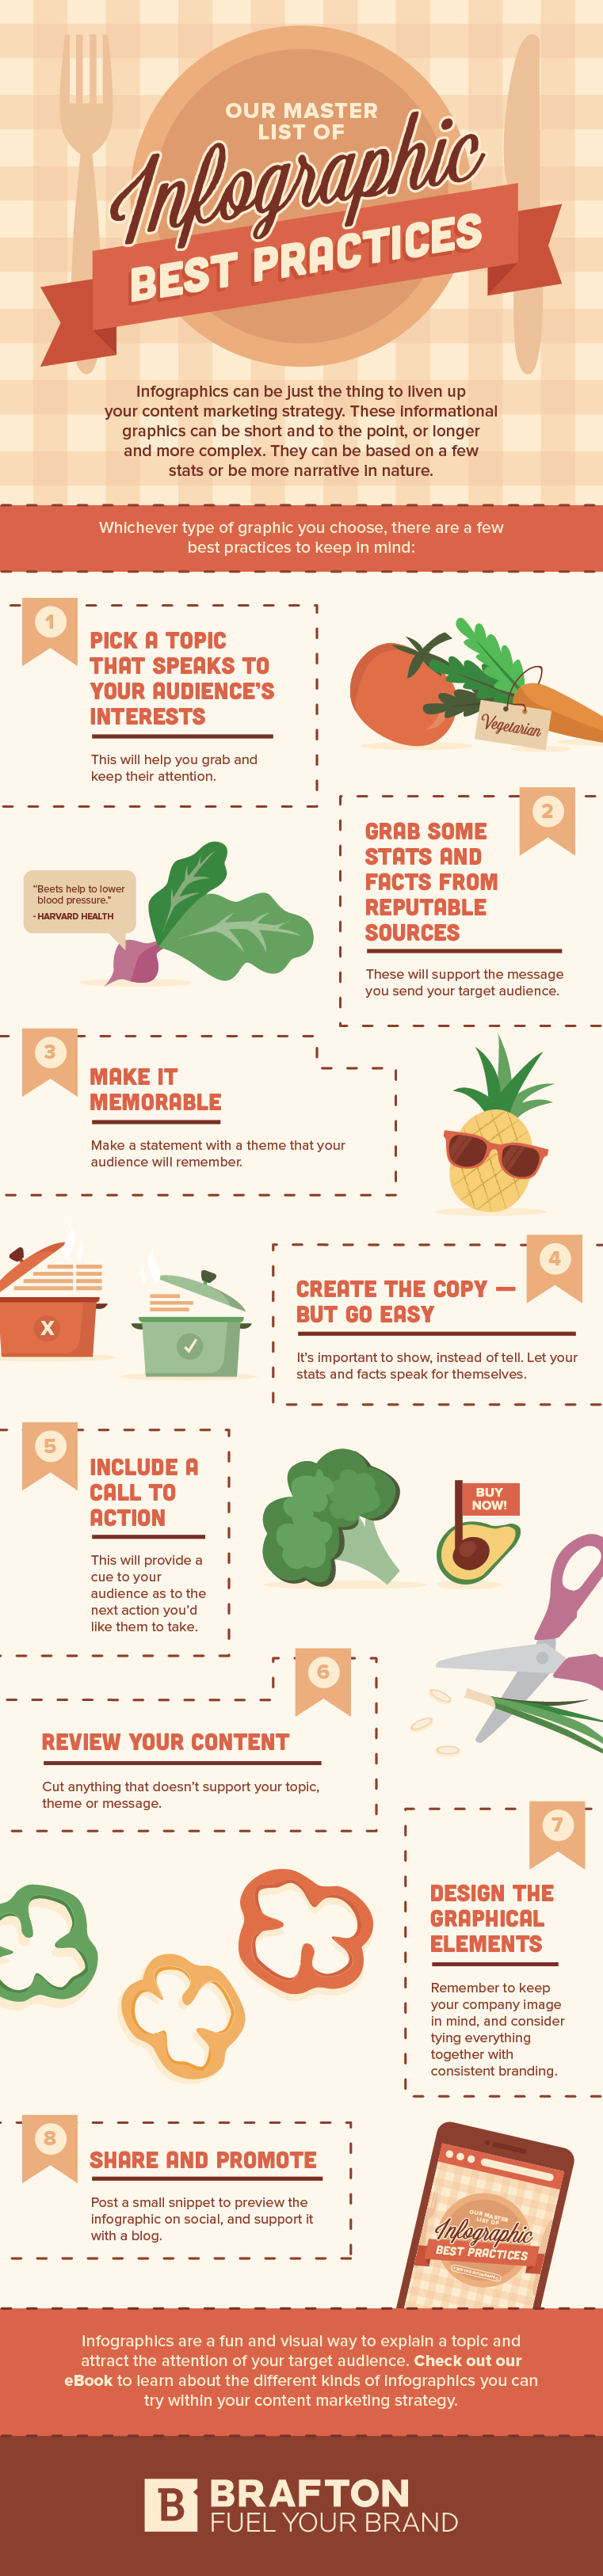 Infographic outlines key best practices in creating infographics